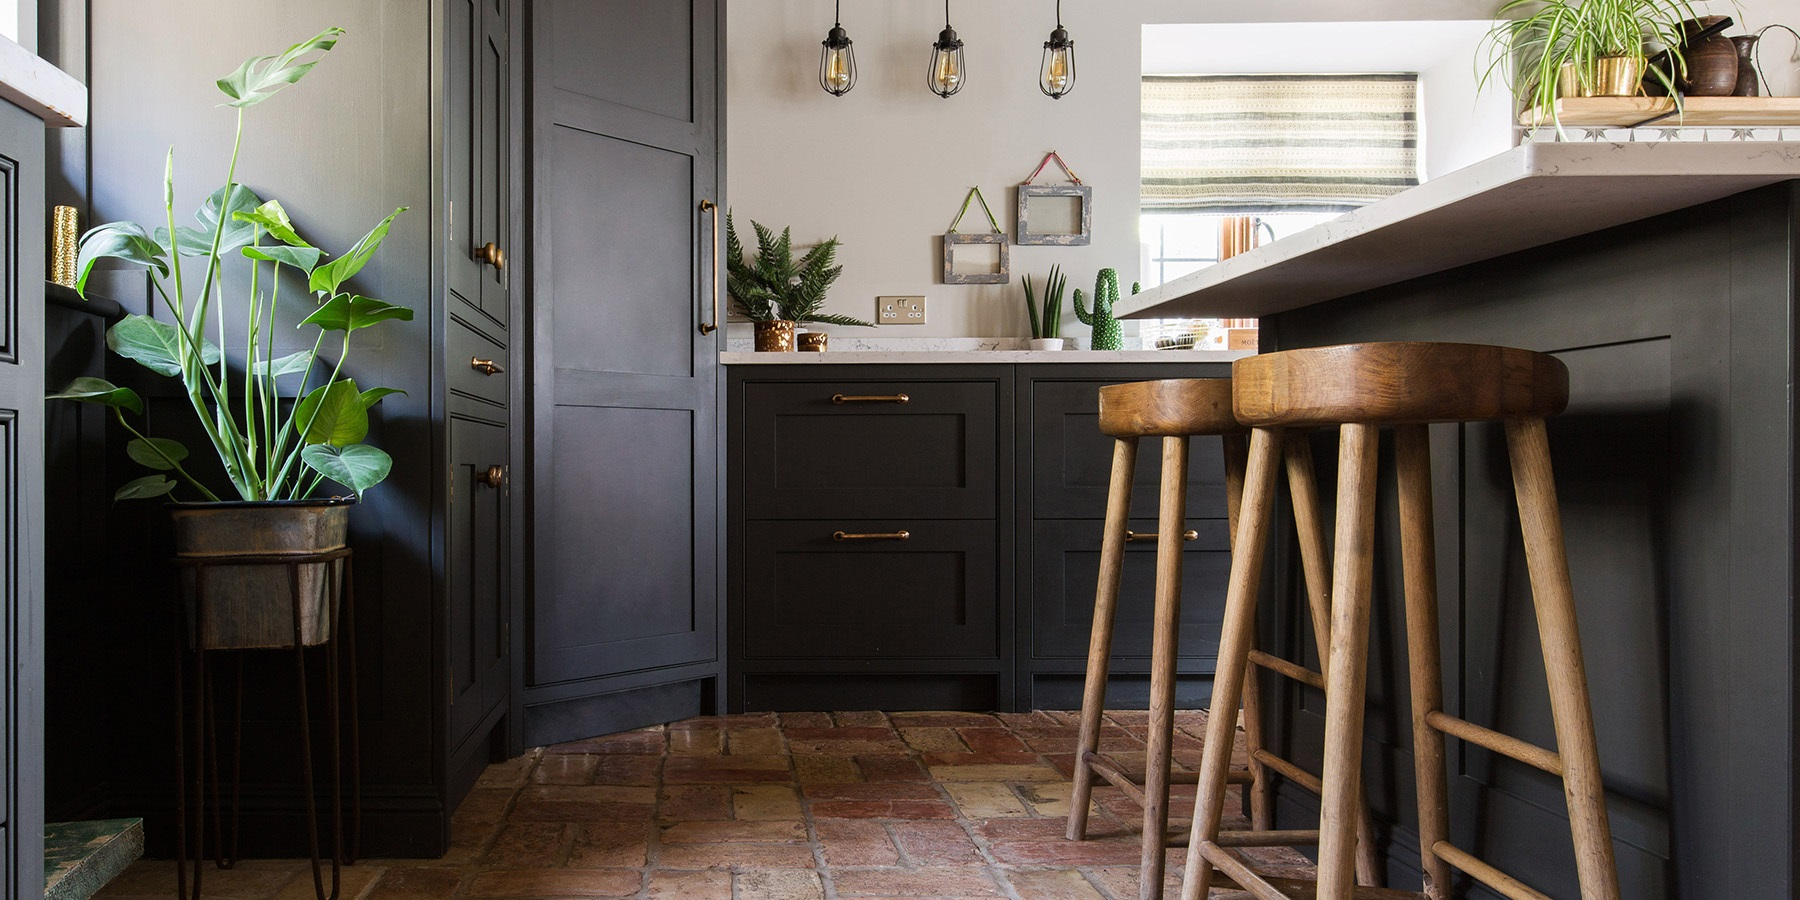 Bespoke, Rustic Shaker Kitchen - Handmade shaker cabinetry and central kitchen island, with beautiful original stone flooring and wooden beams, larder unit and white quartz worktops.